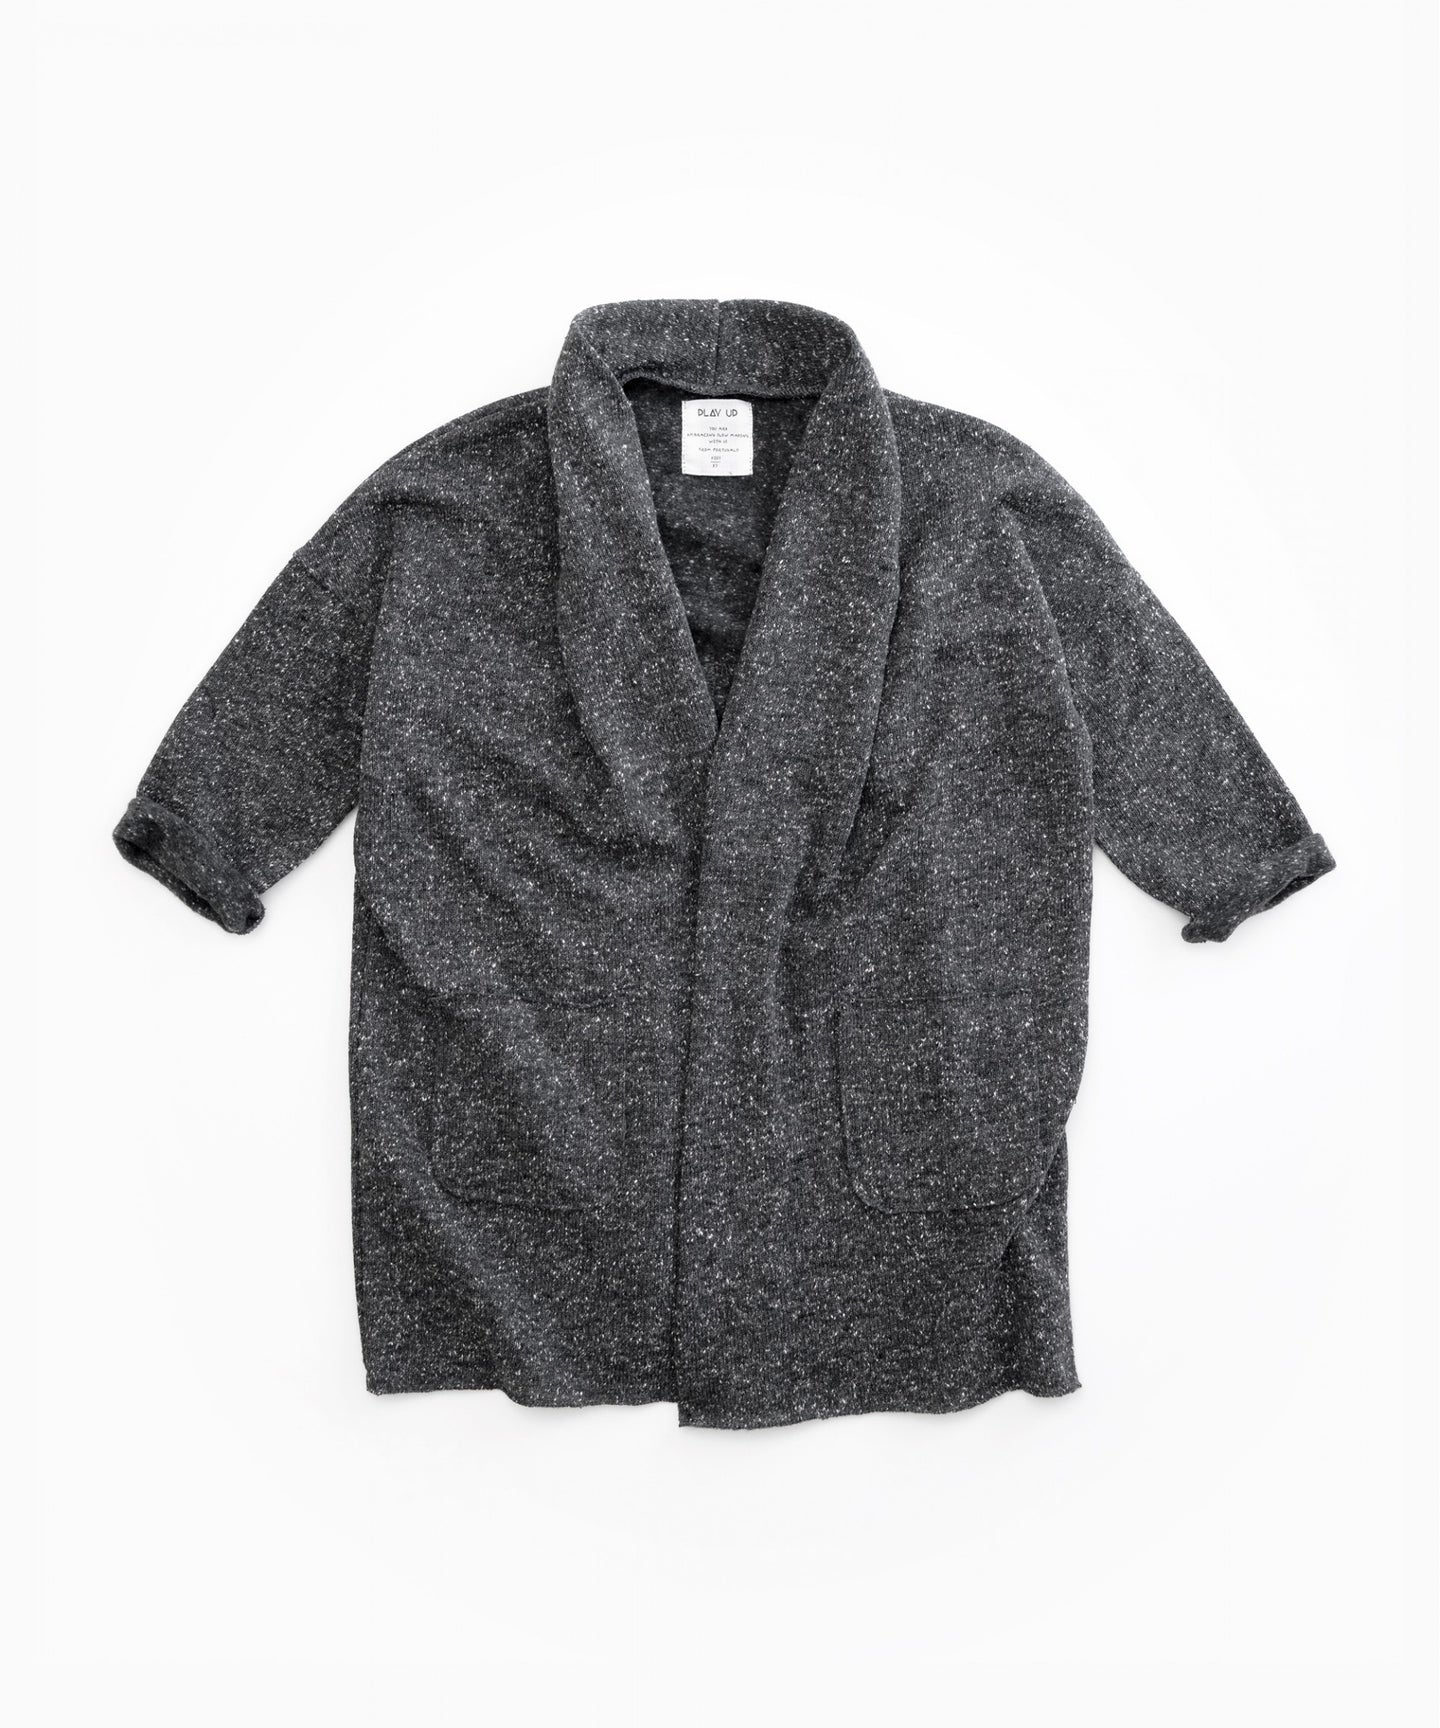 Play Up - Recycled Sweater Jacket W/ Pockets - Rasp